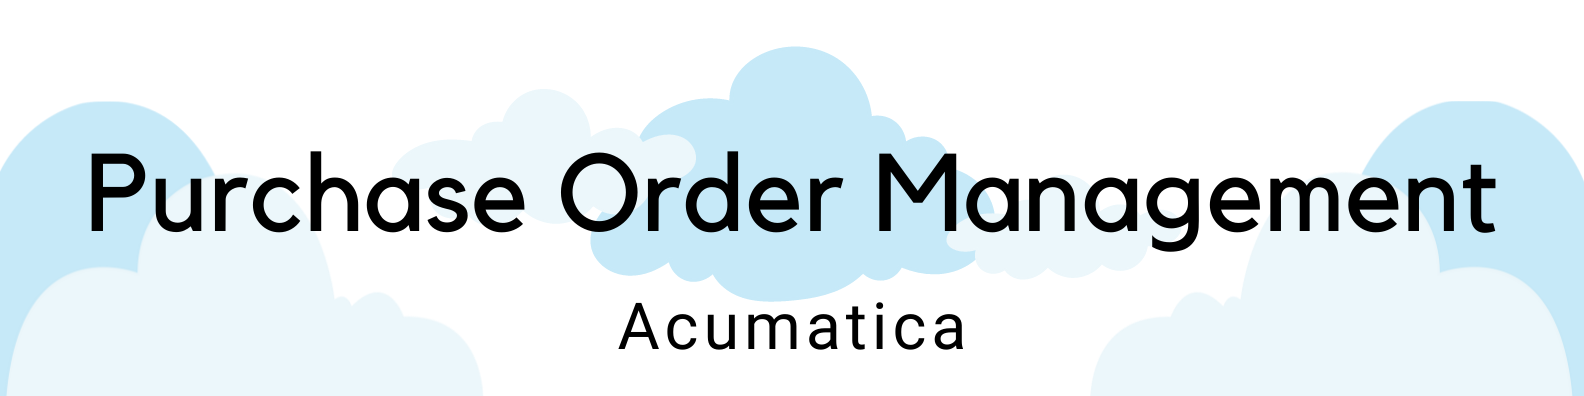 ICAN Header Acumatica Purchase Order Management